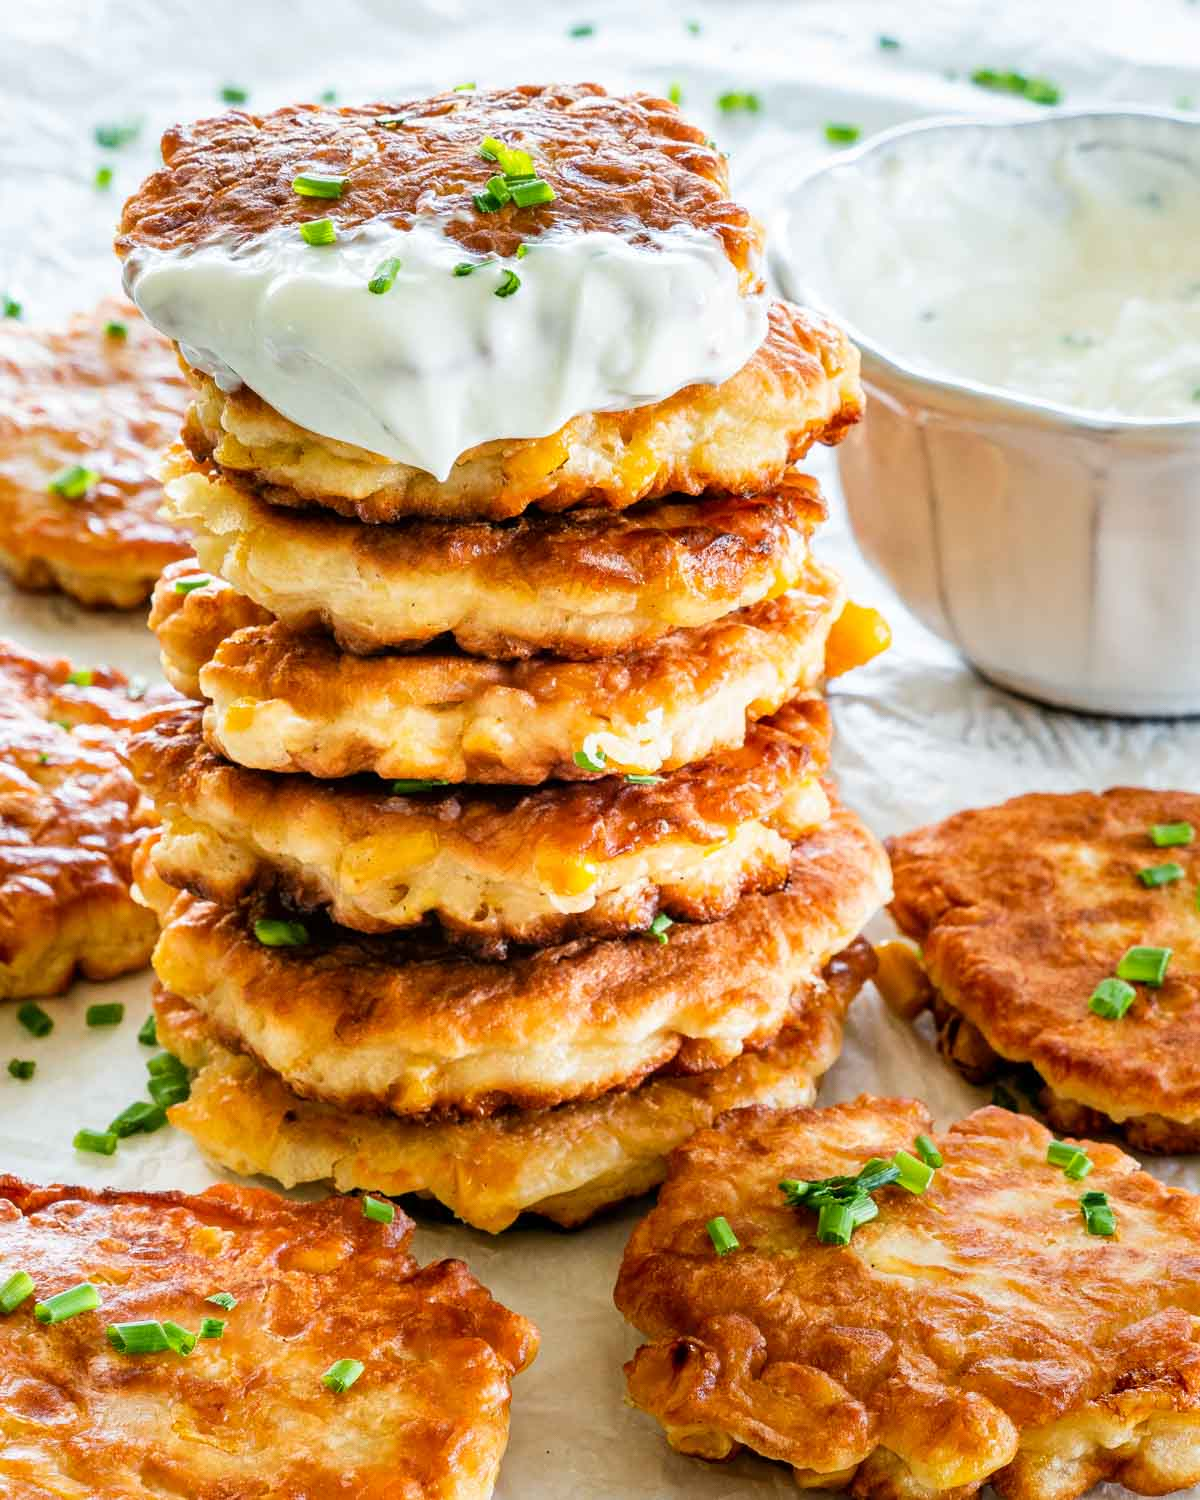 a stack of corn fritters garnished with some chives and a little bowl of sour cream in the background